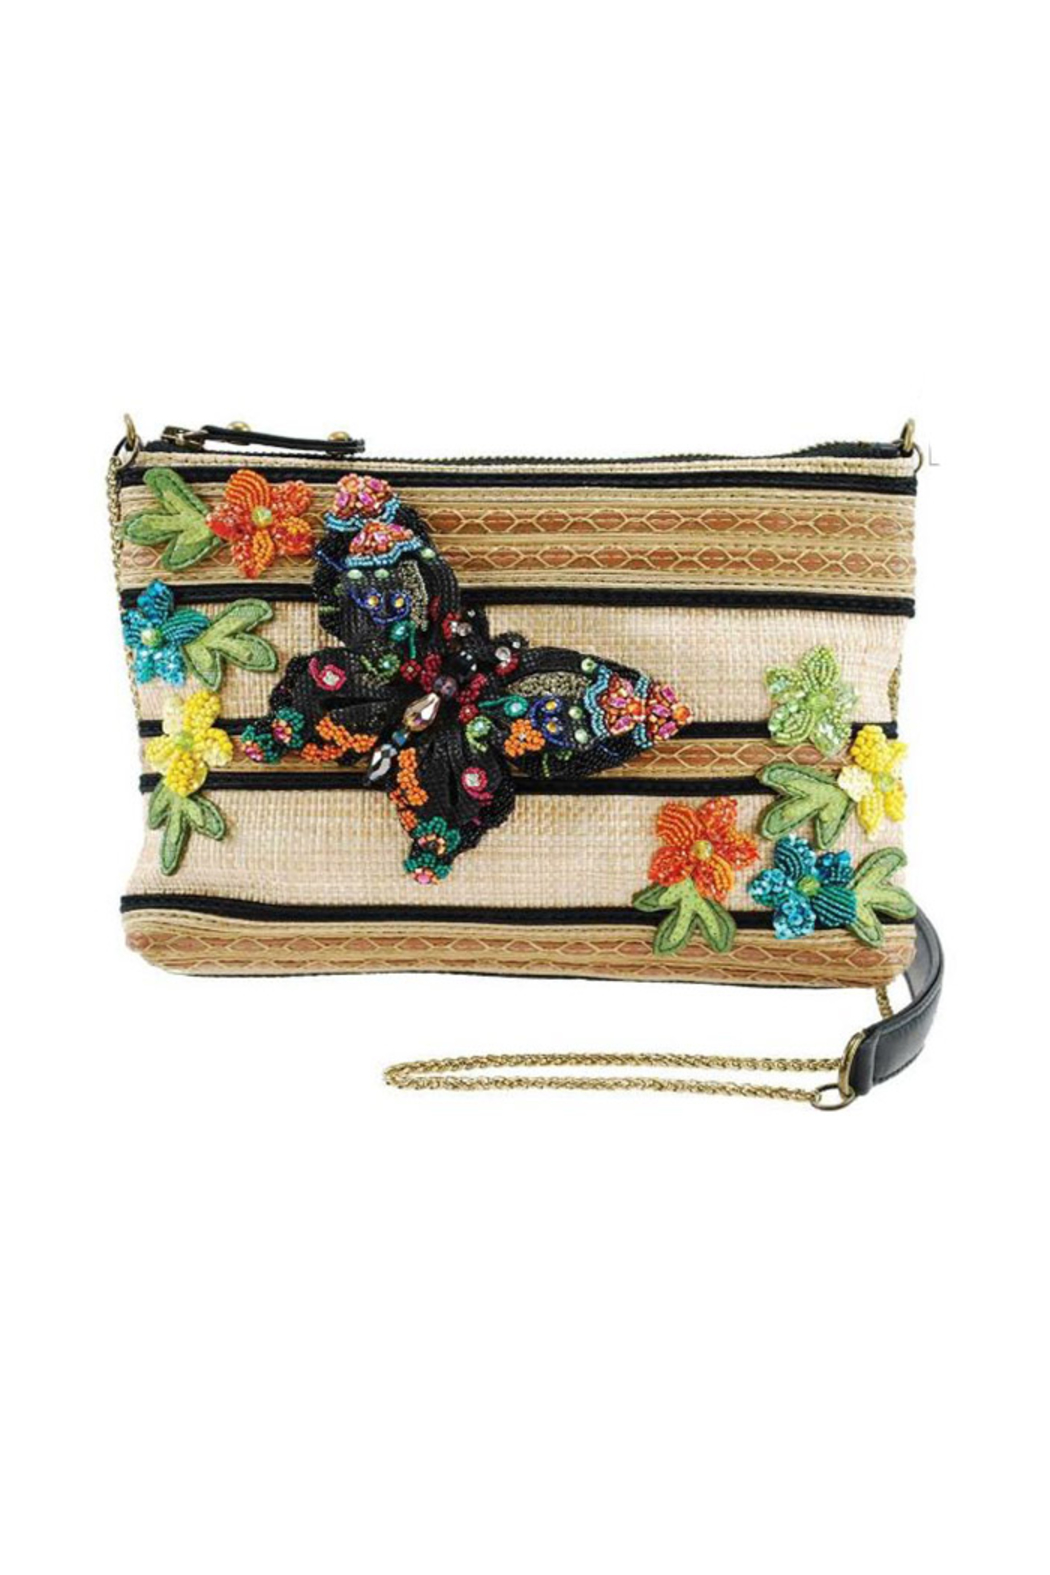 Mary Frances Accessories Butterfly Fantasy Crossbody - Main Image